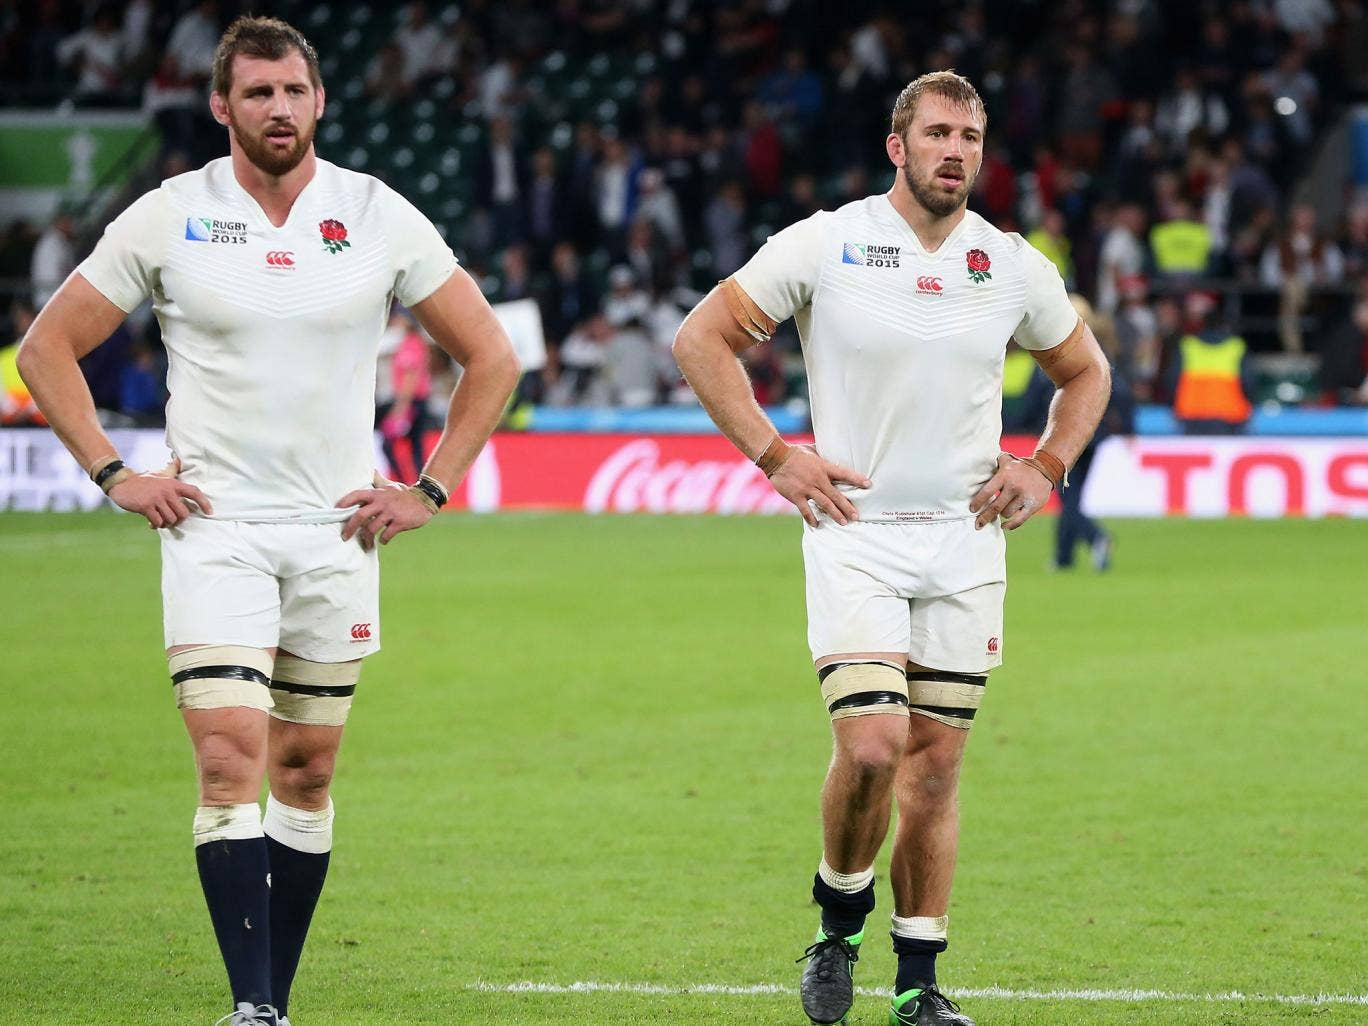 sport rugby harlequins hooker dave ward rapped over england captaincy twitter spat with tom wood a.